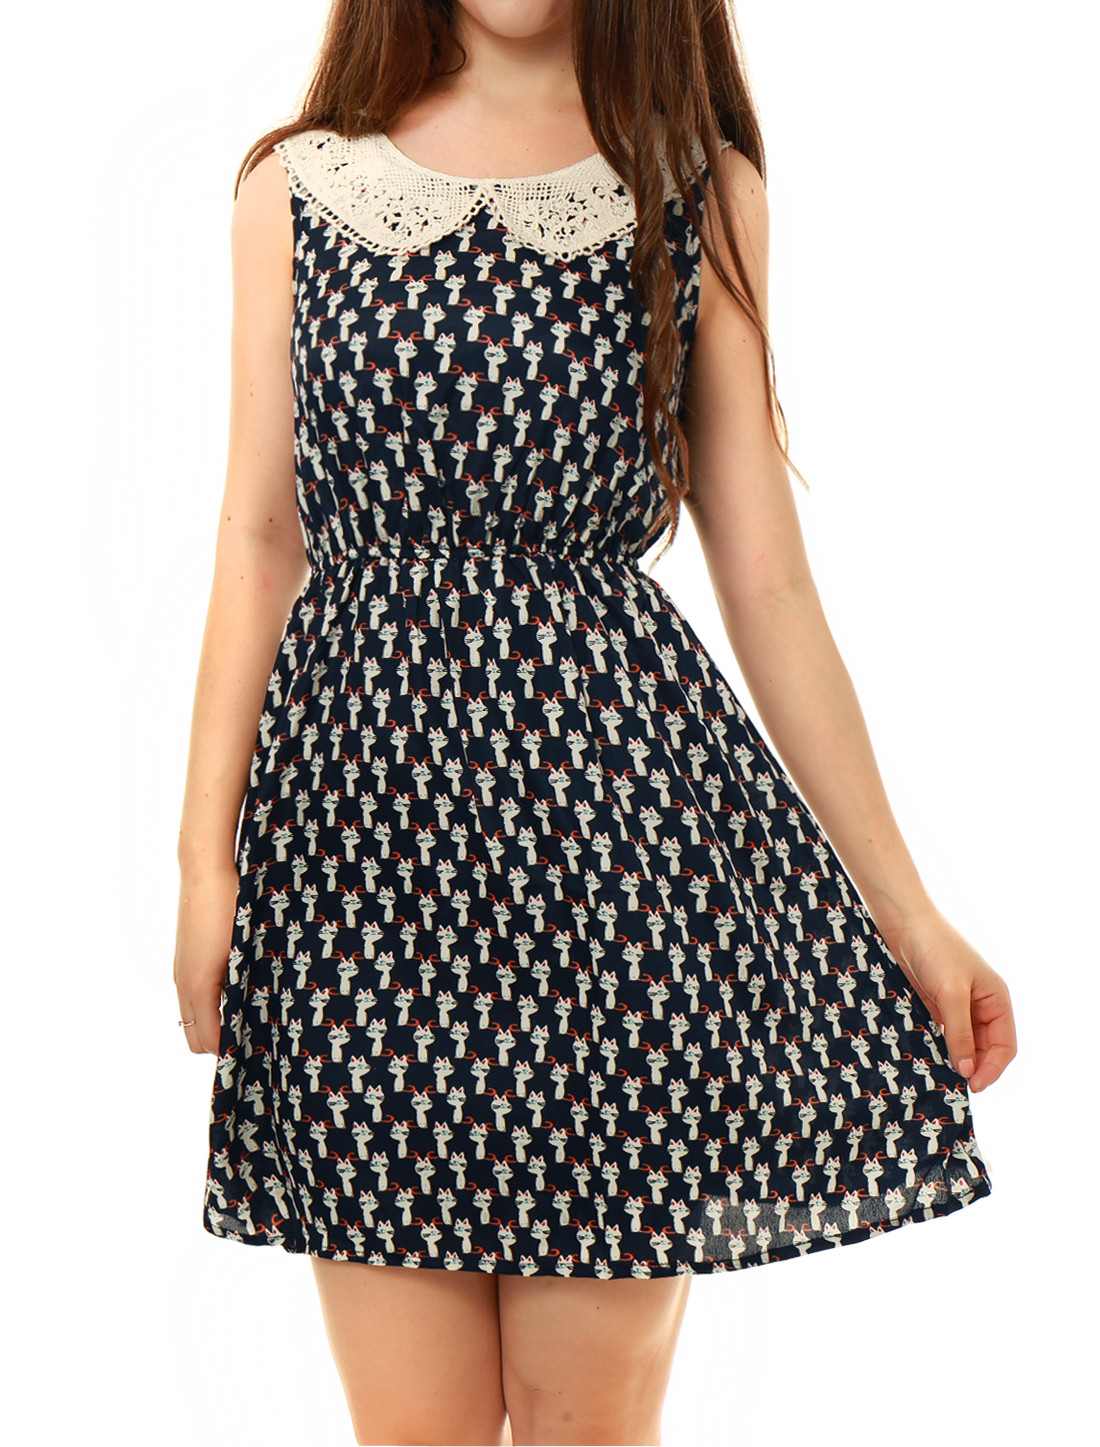 Women Stylish Doll Collar Cartoon Cats Printed Dark Blue Mini Dress M